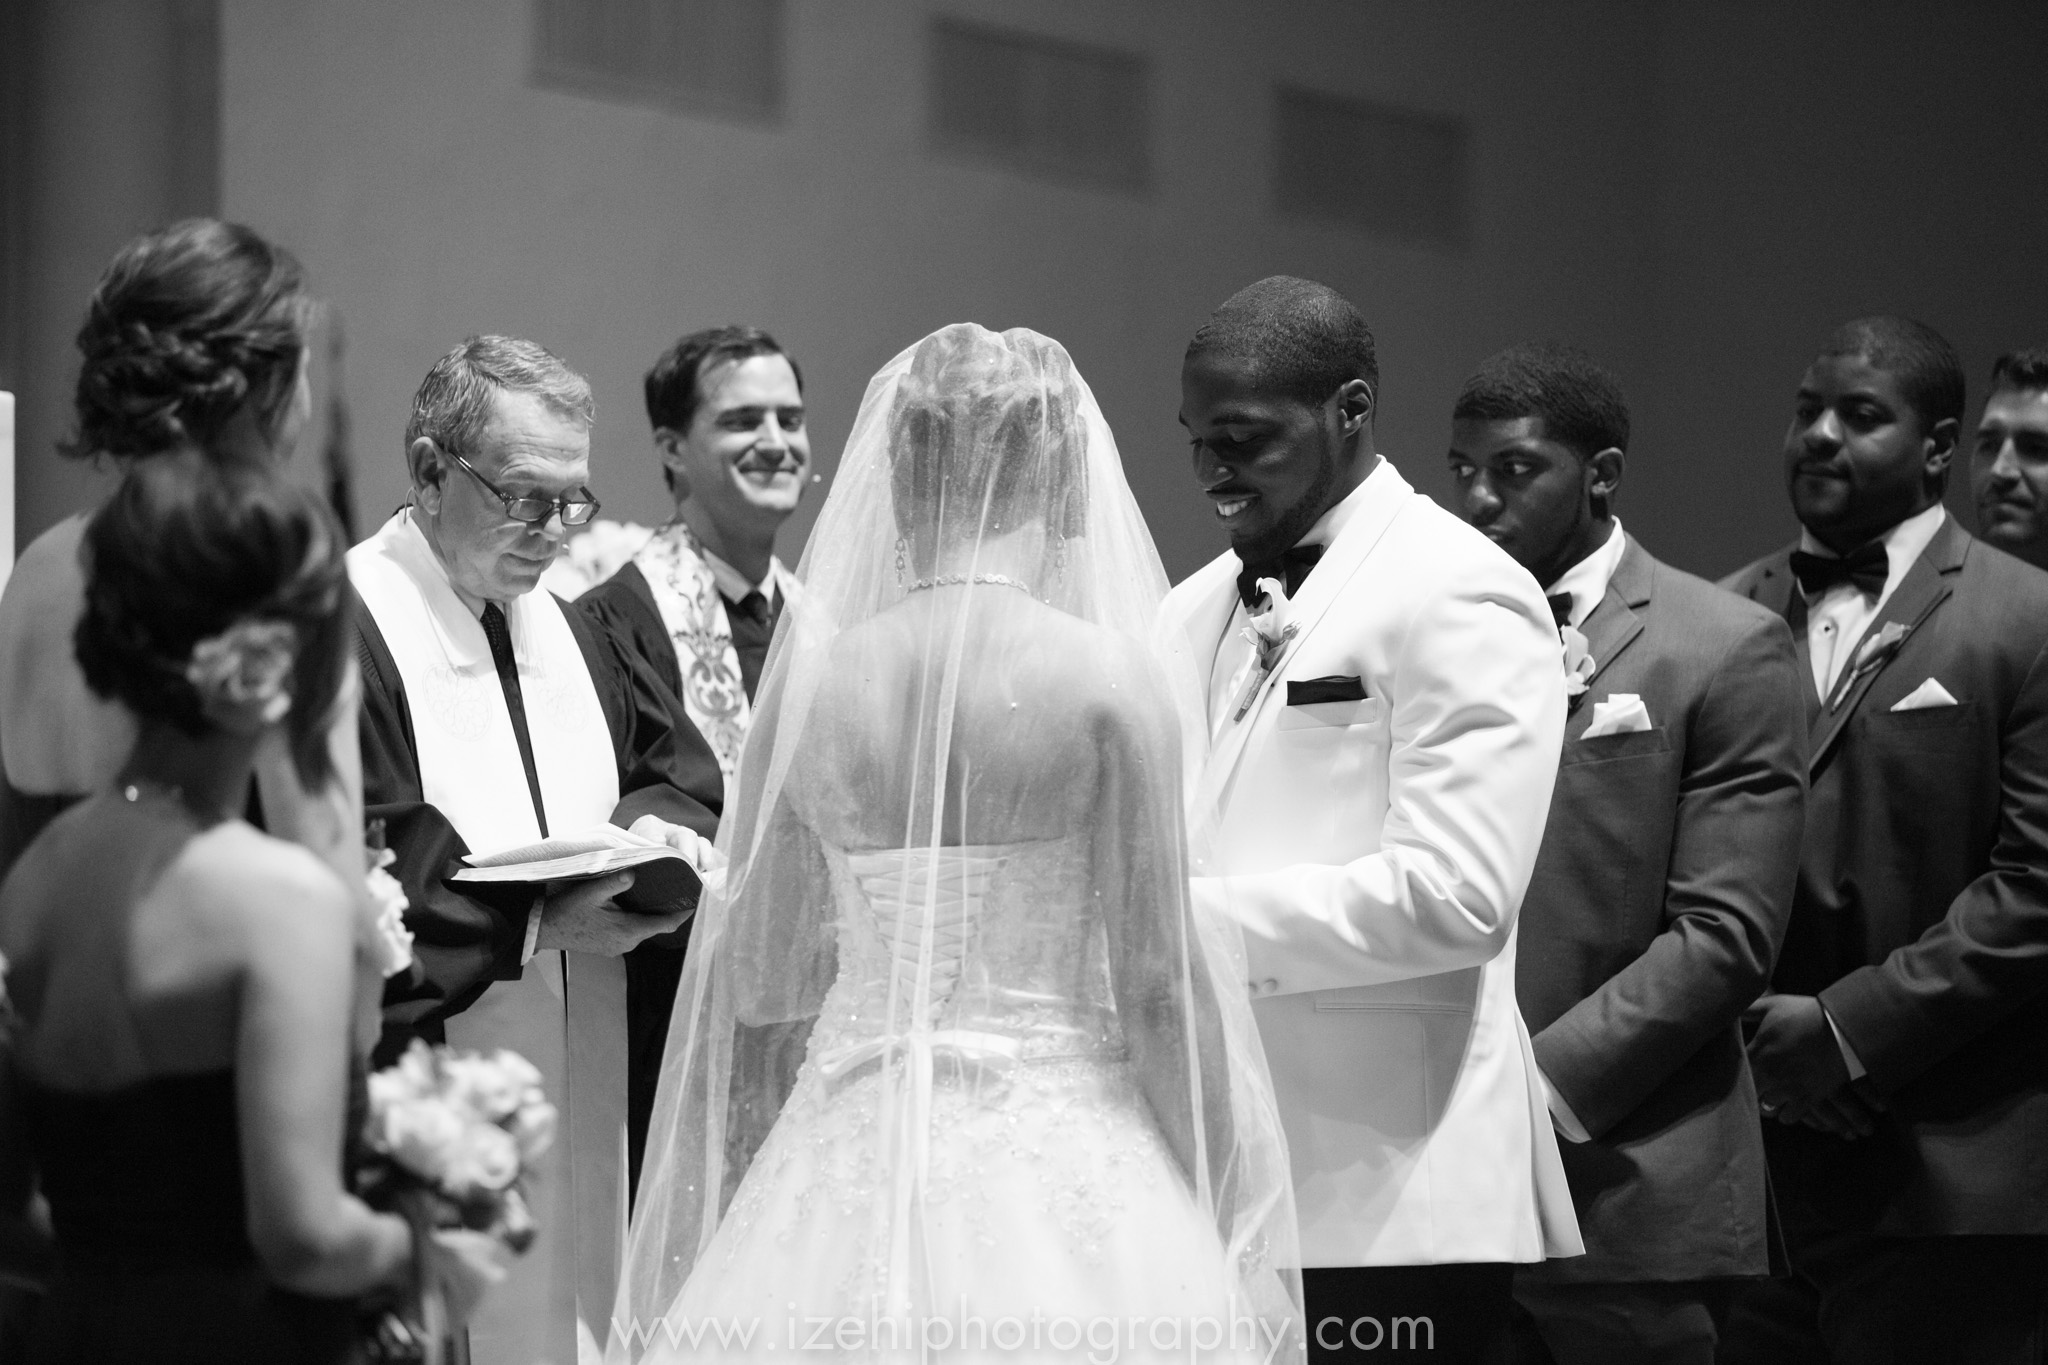 Izehi Photography Sam Acho Nigerian Wedding -144.jpg